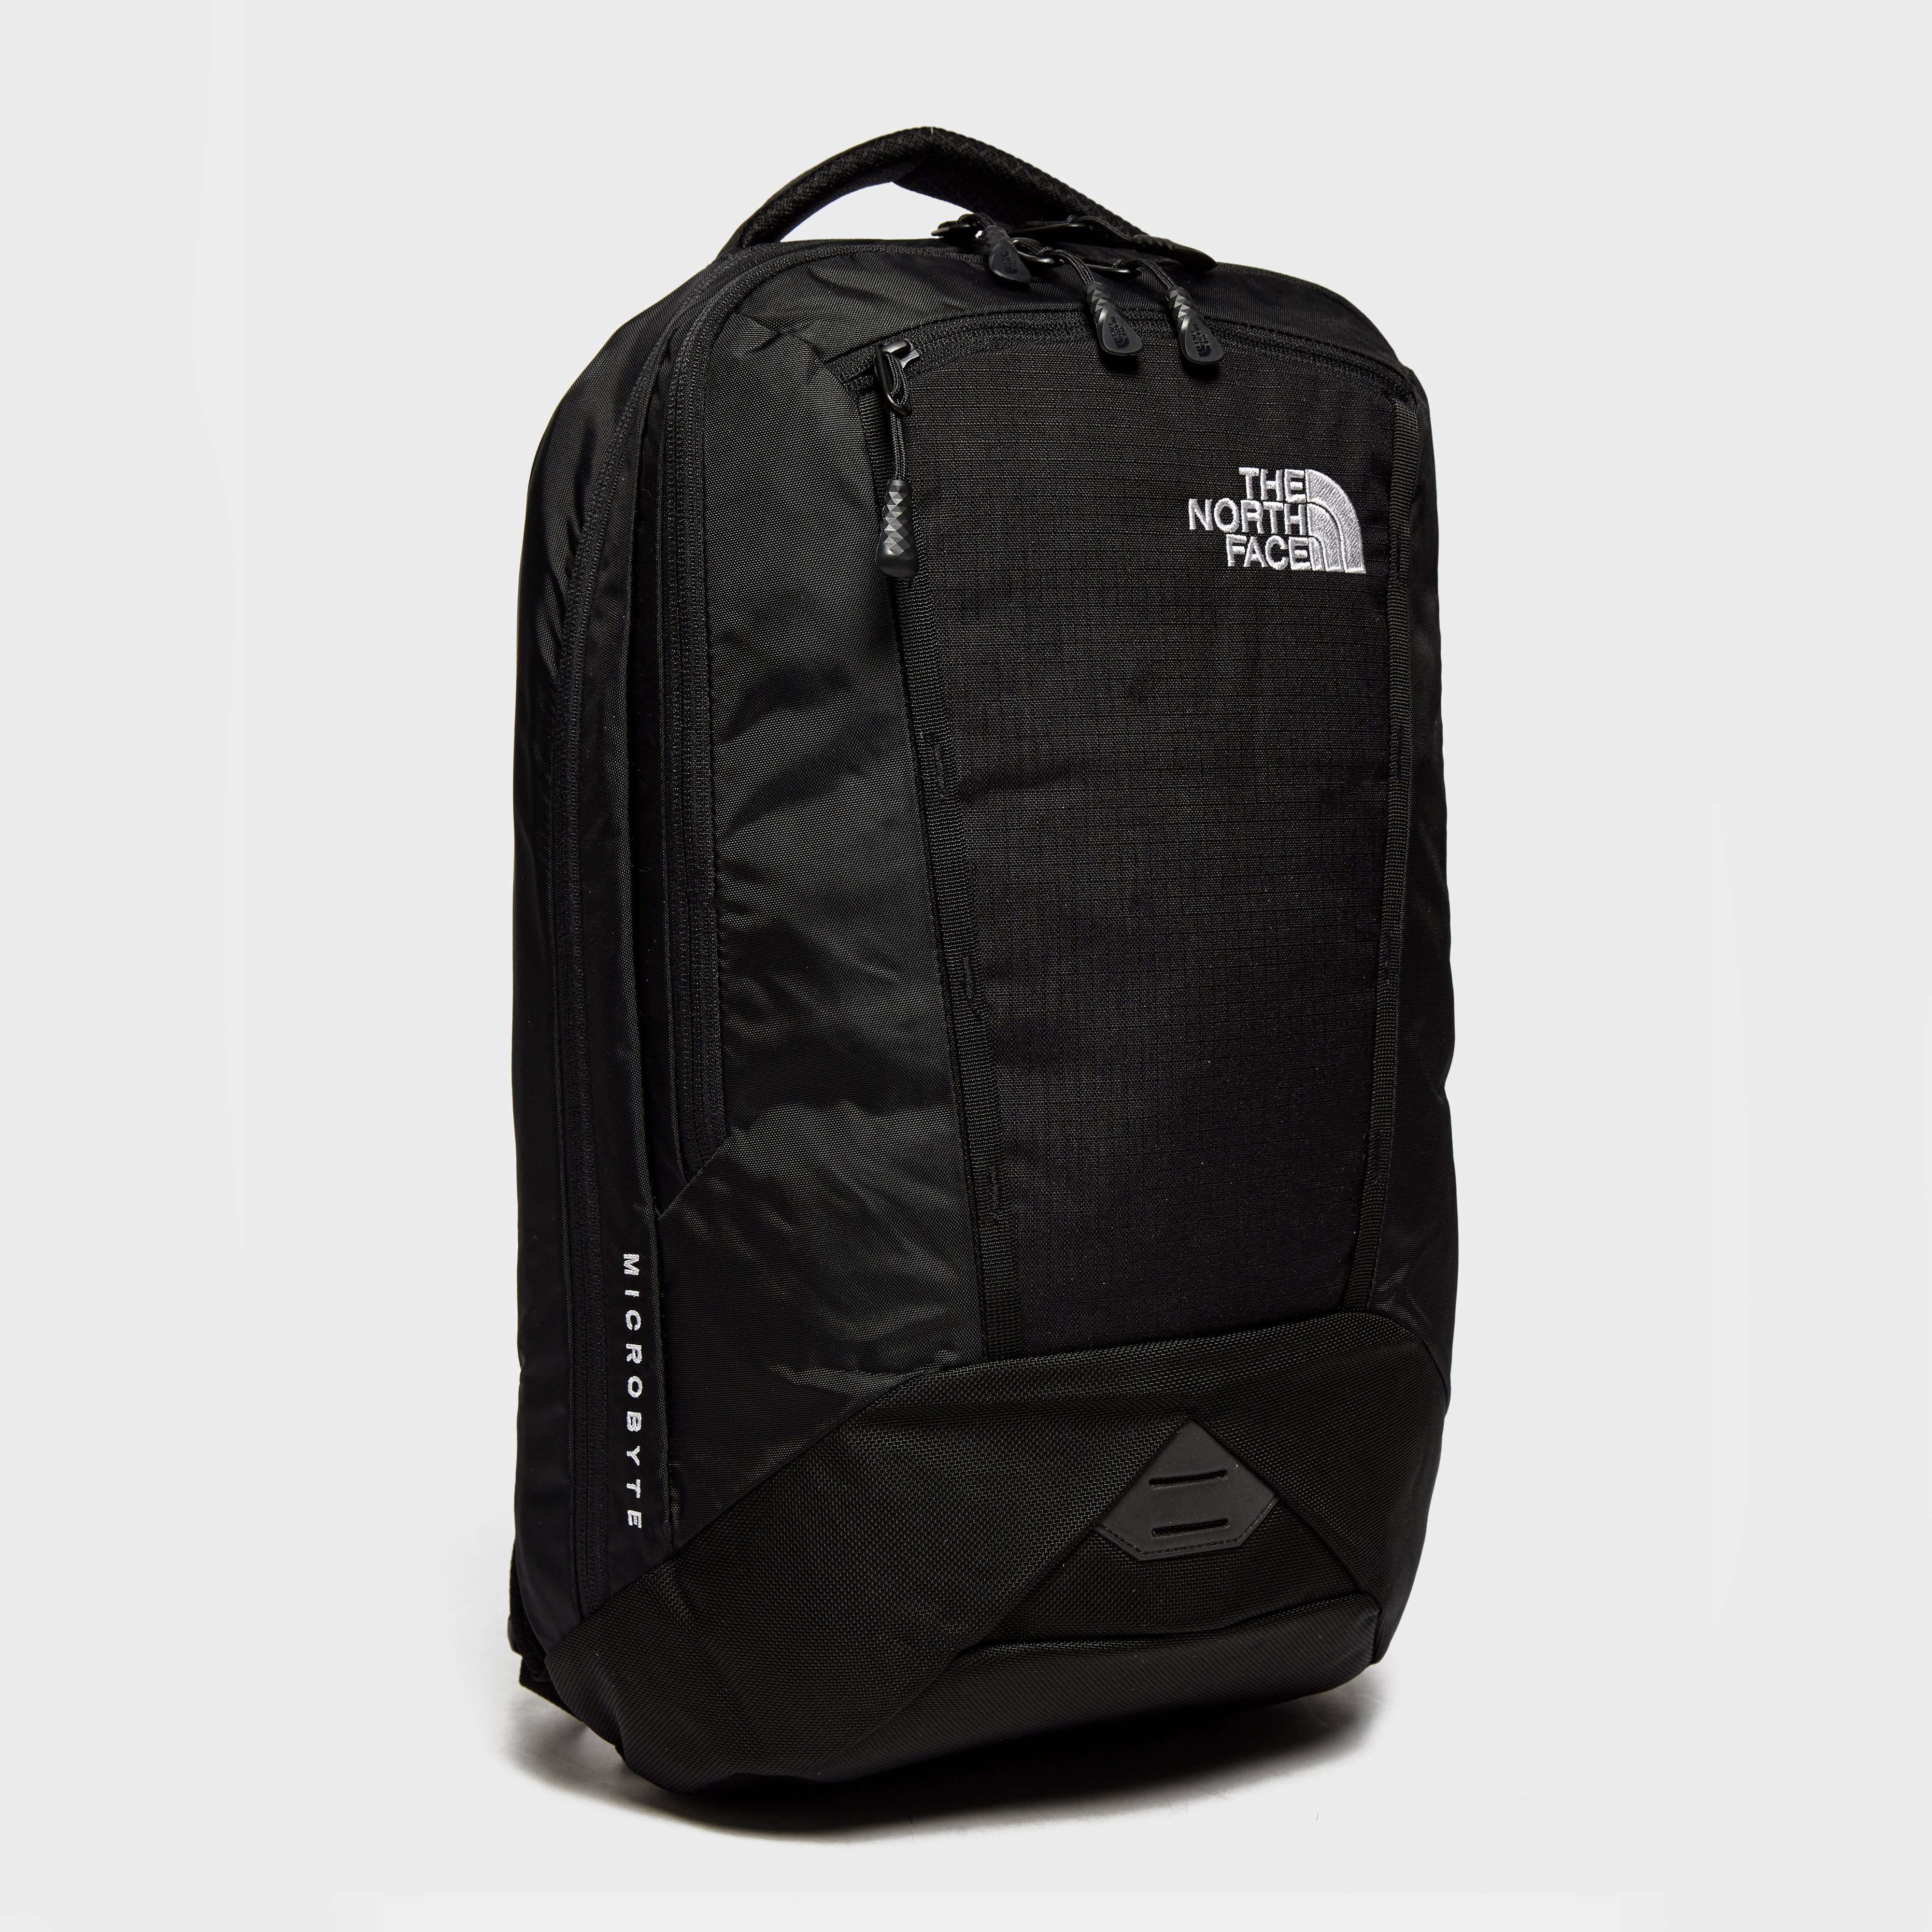 THE NORTH FACE Microbyte 17L Daypack